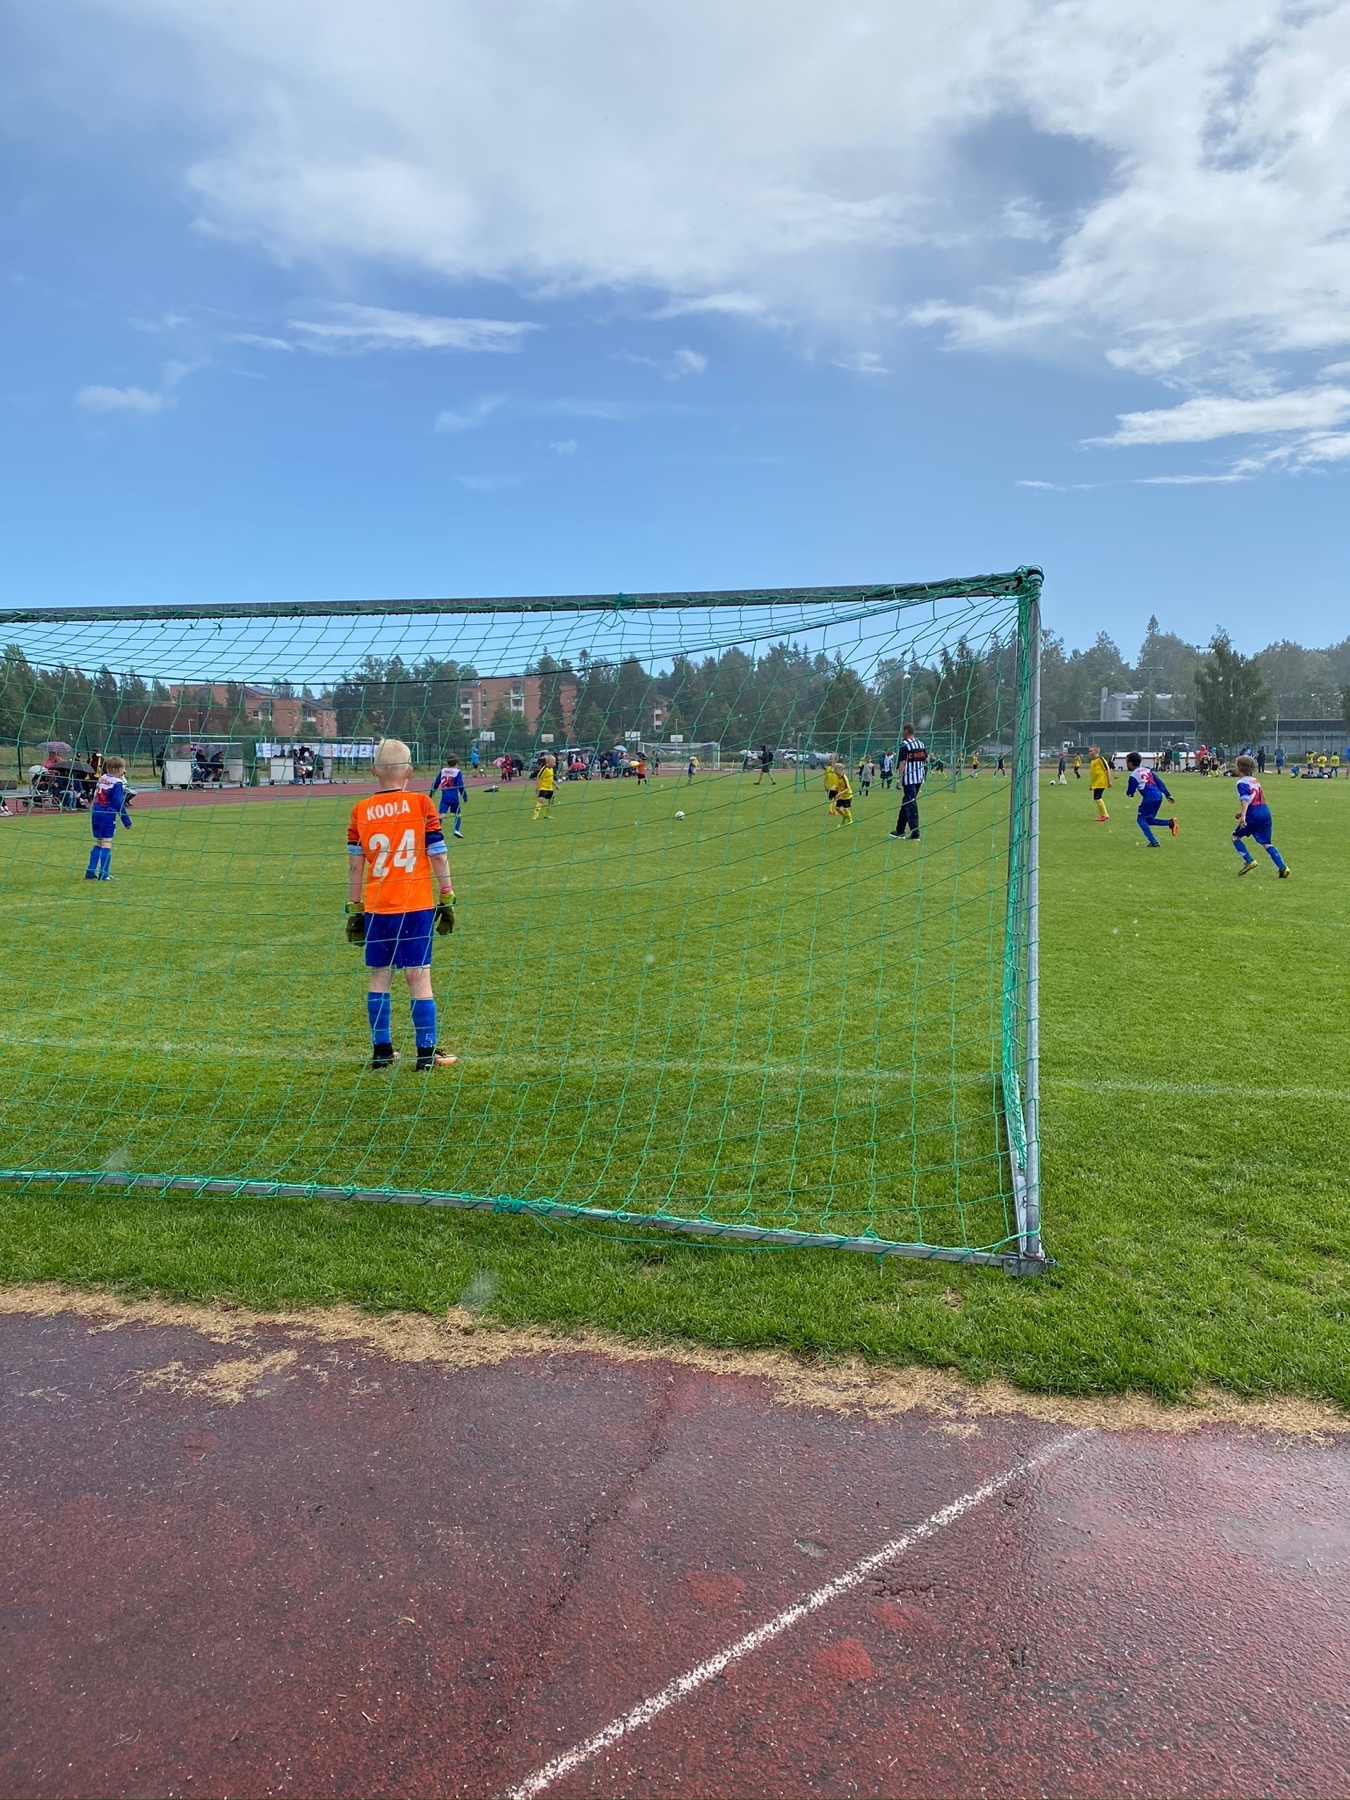 boy standing as a goal keeper in orange shirt, game going on further up field